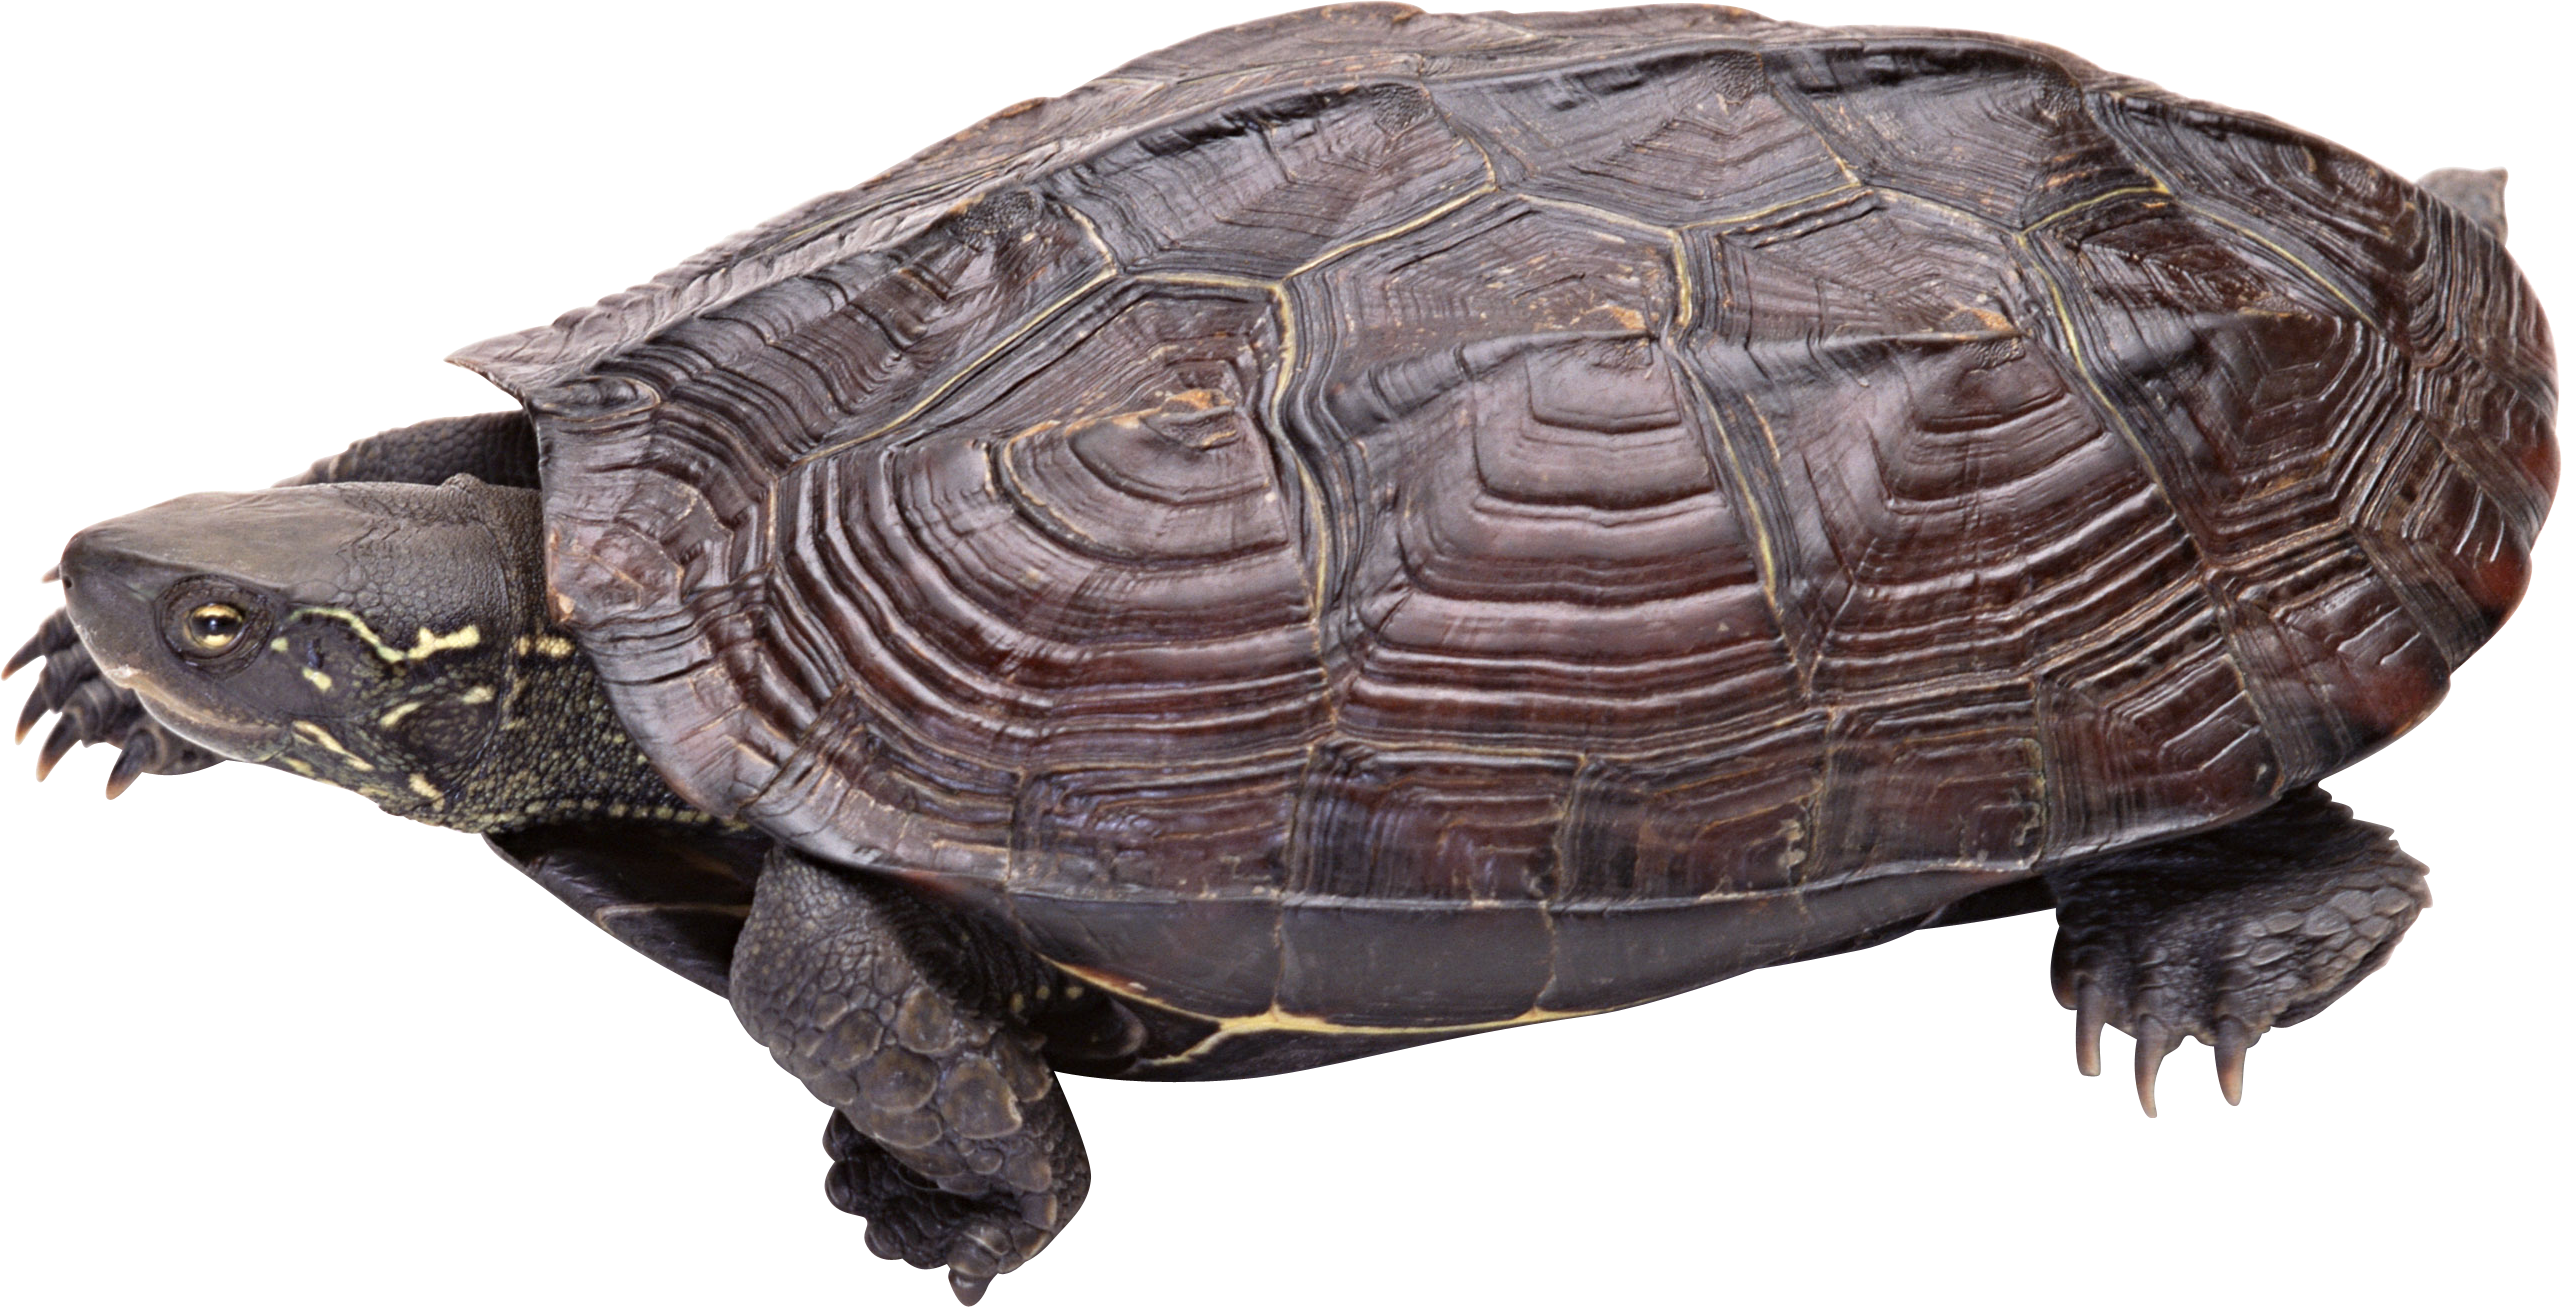 Turtle PNG - Snapping Turtle PNG